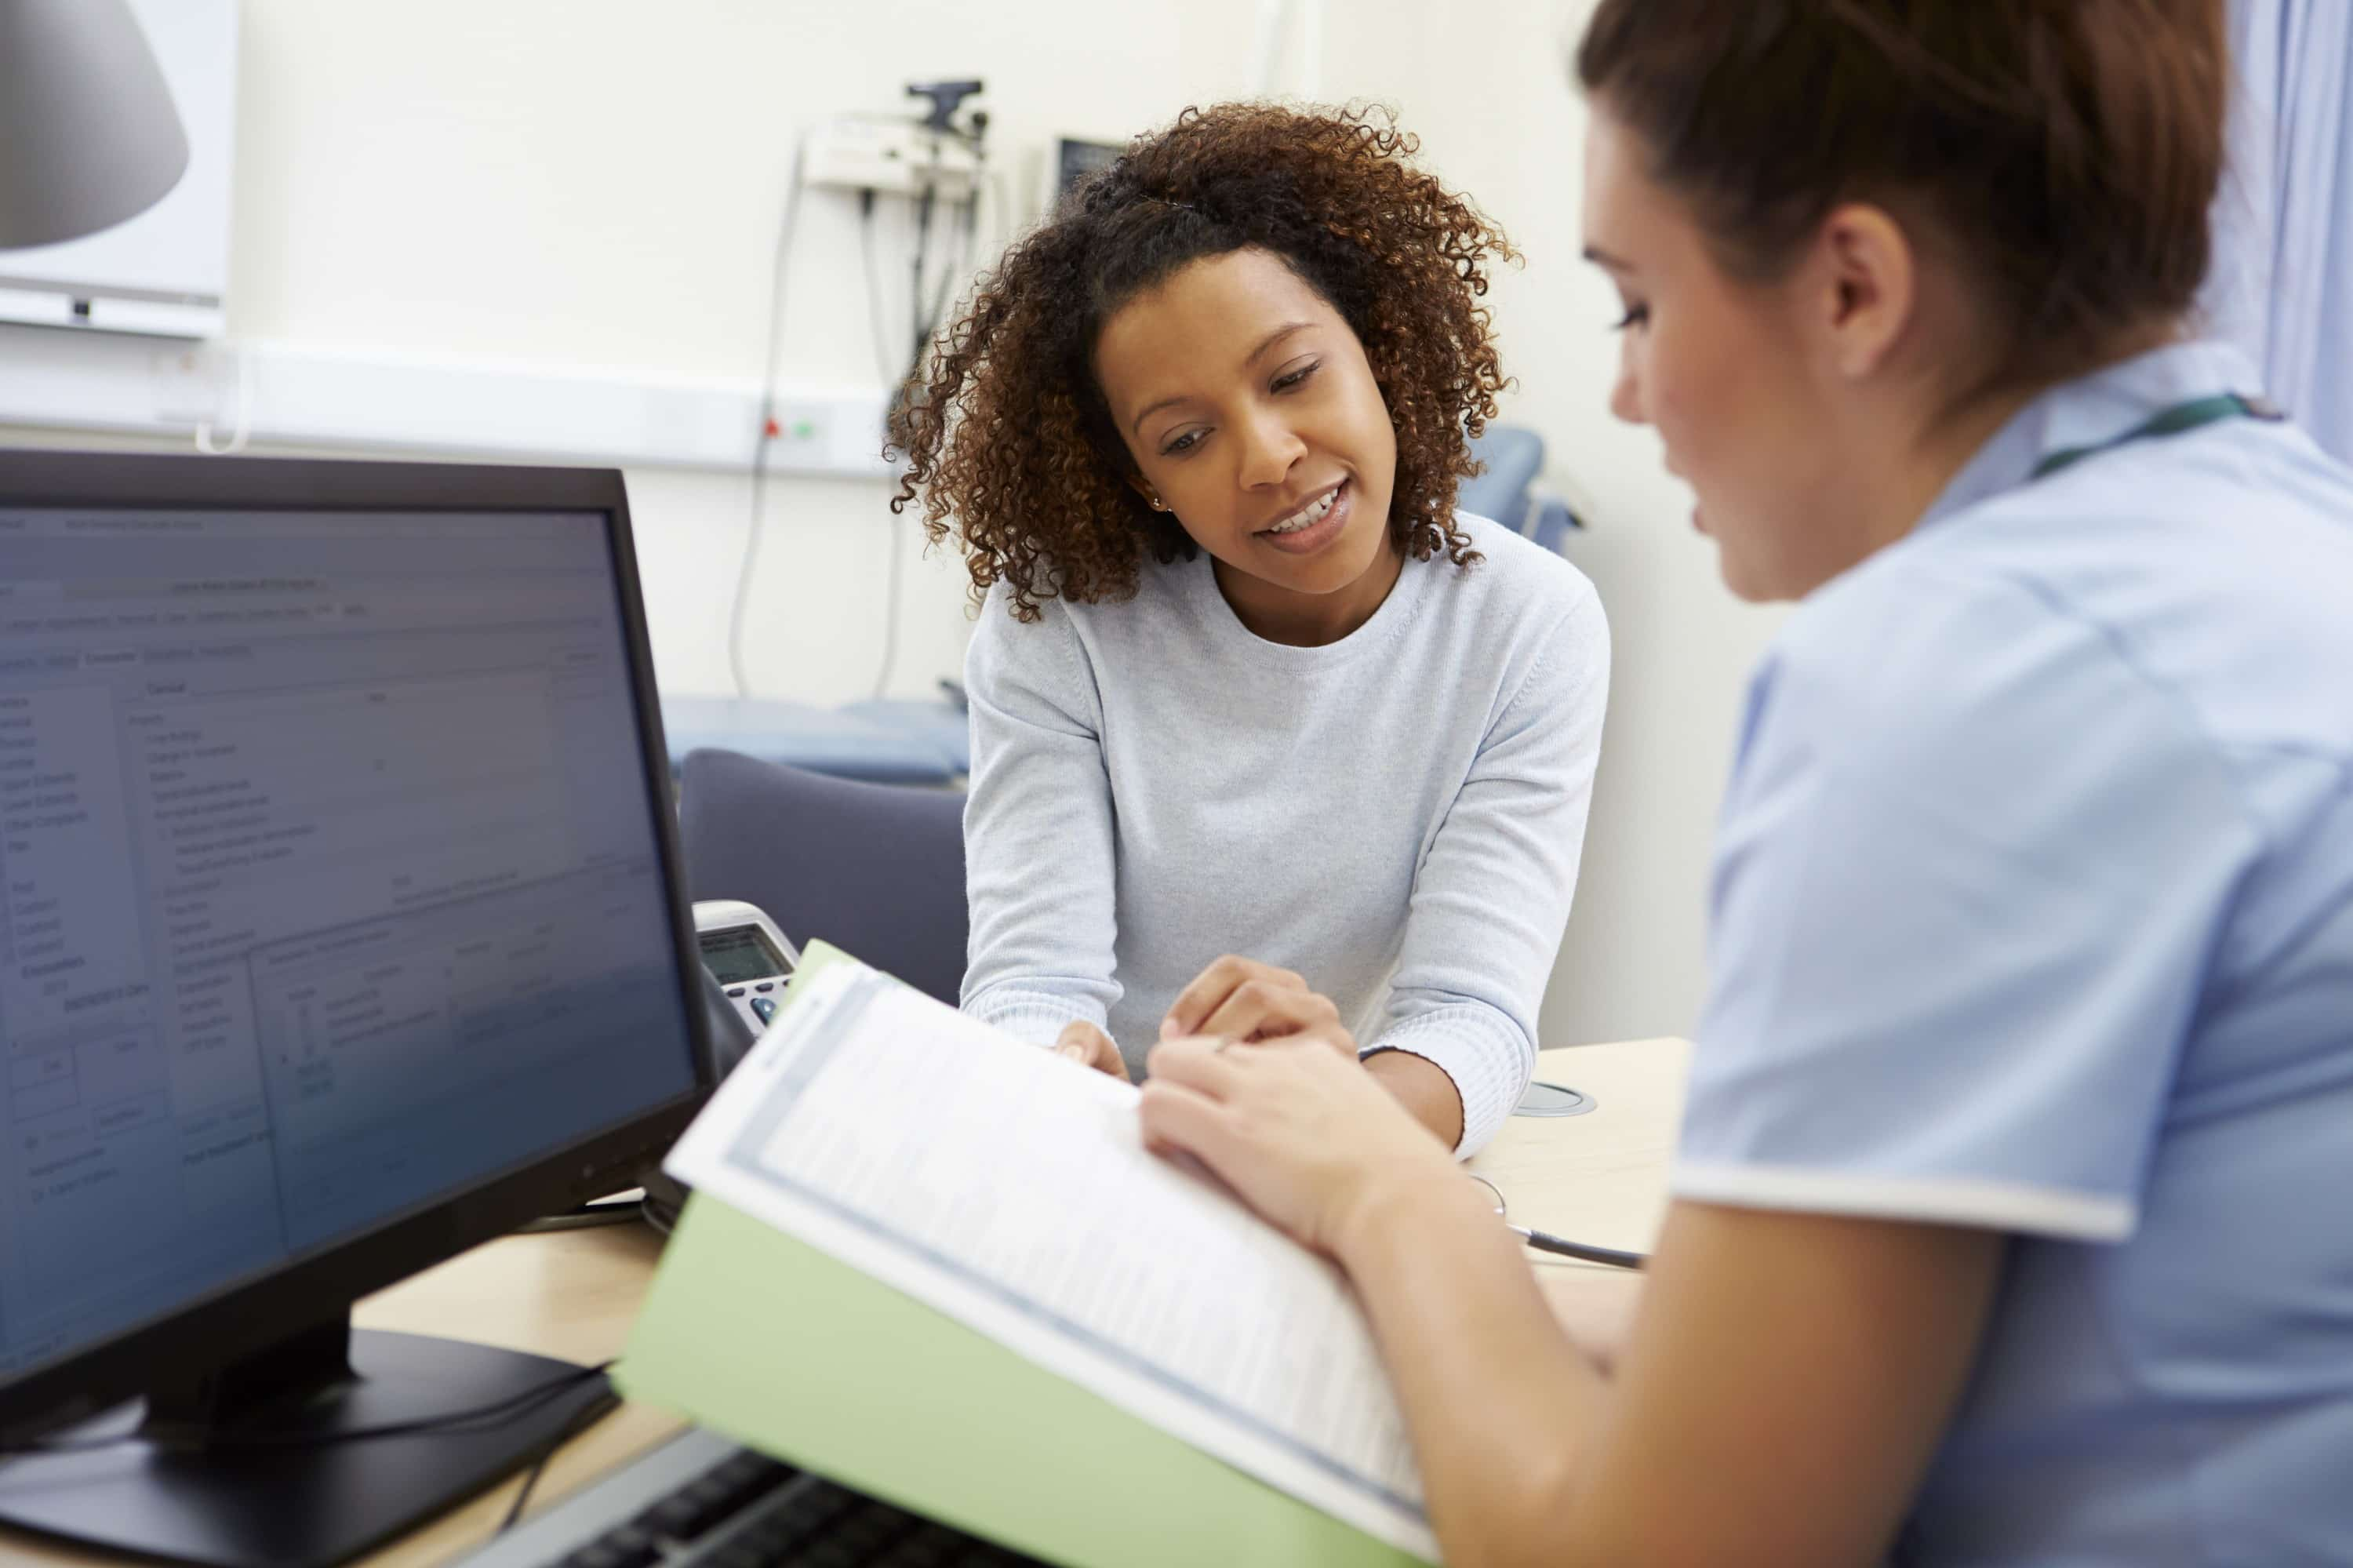 Nurse Discussing Test Results With Patient In Office Looking At Documents